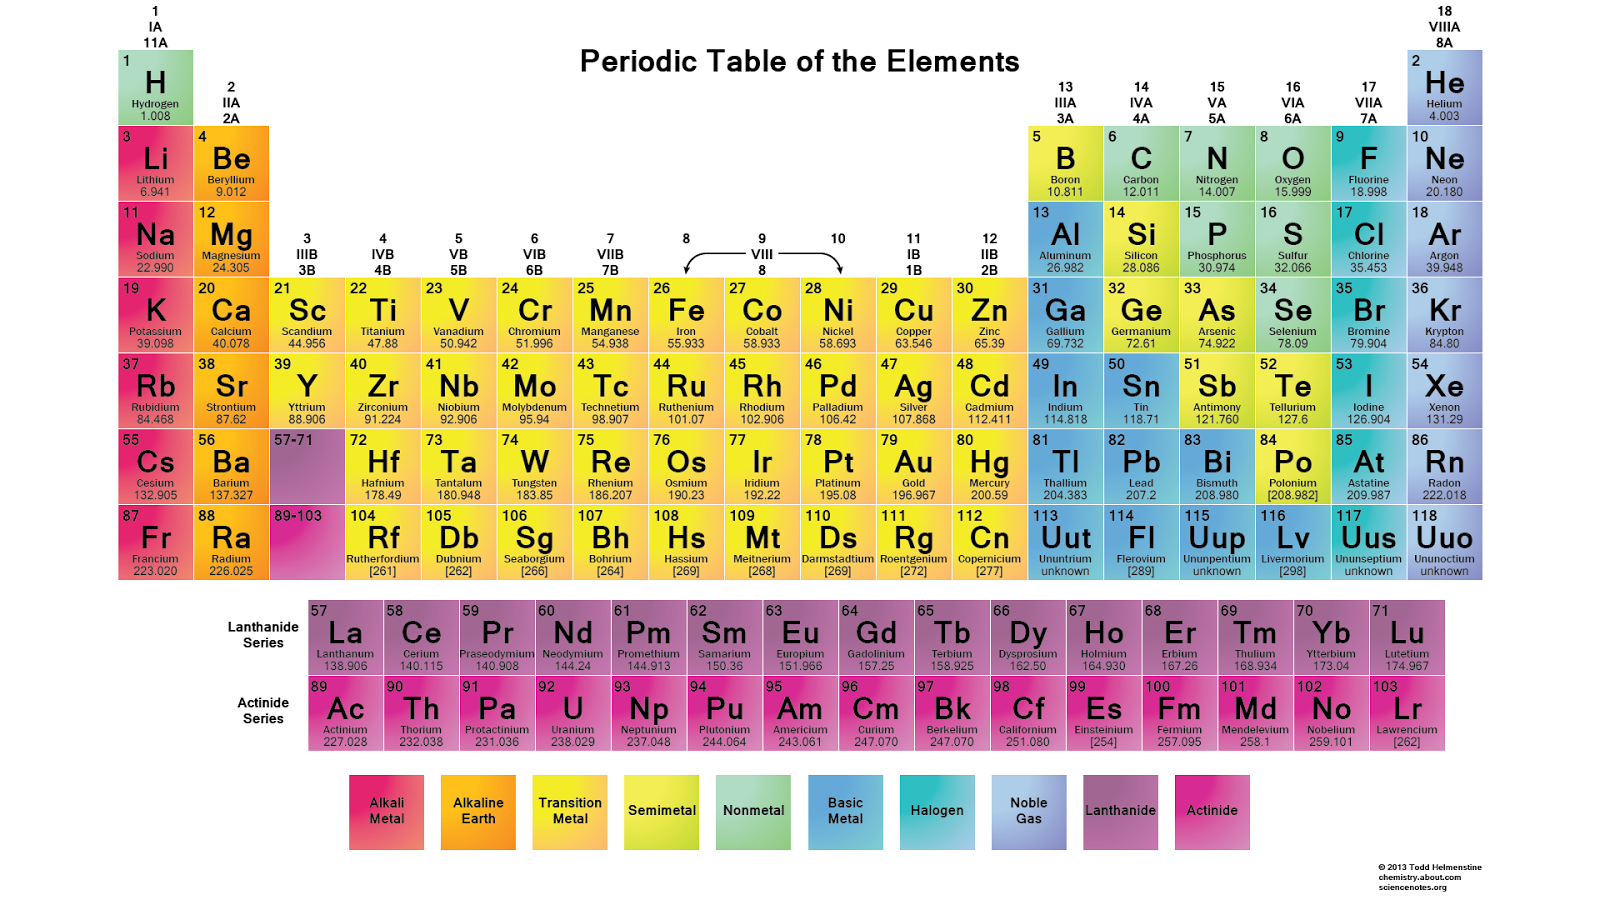 Skeptophilia elements of style this confirms a claim made by russian scientists in 2004 and completes another row of the periodic table bringing to 118 the number of confirmed elements urtaz Images